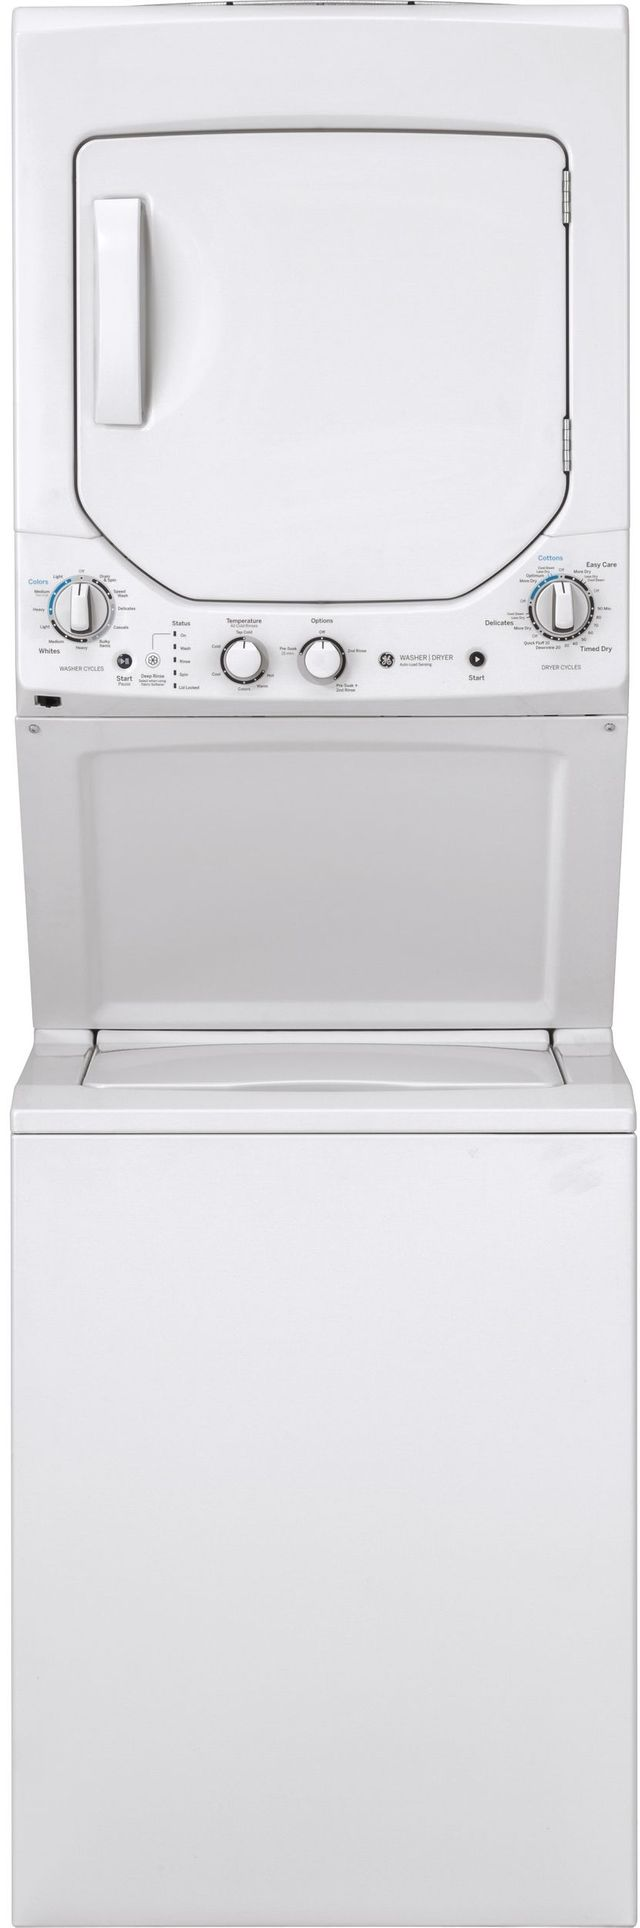 GE® Unitized Spacemaker® Stack Laundry-White On White-GUD24GSSMWW